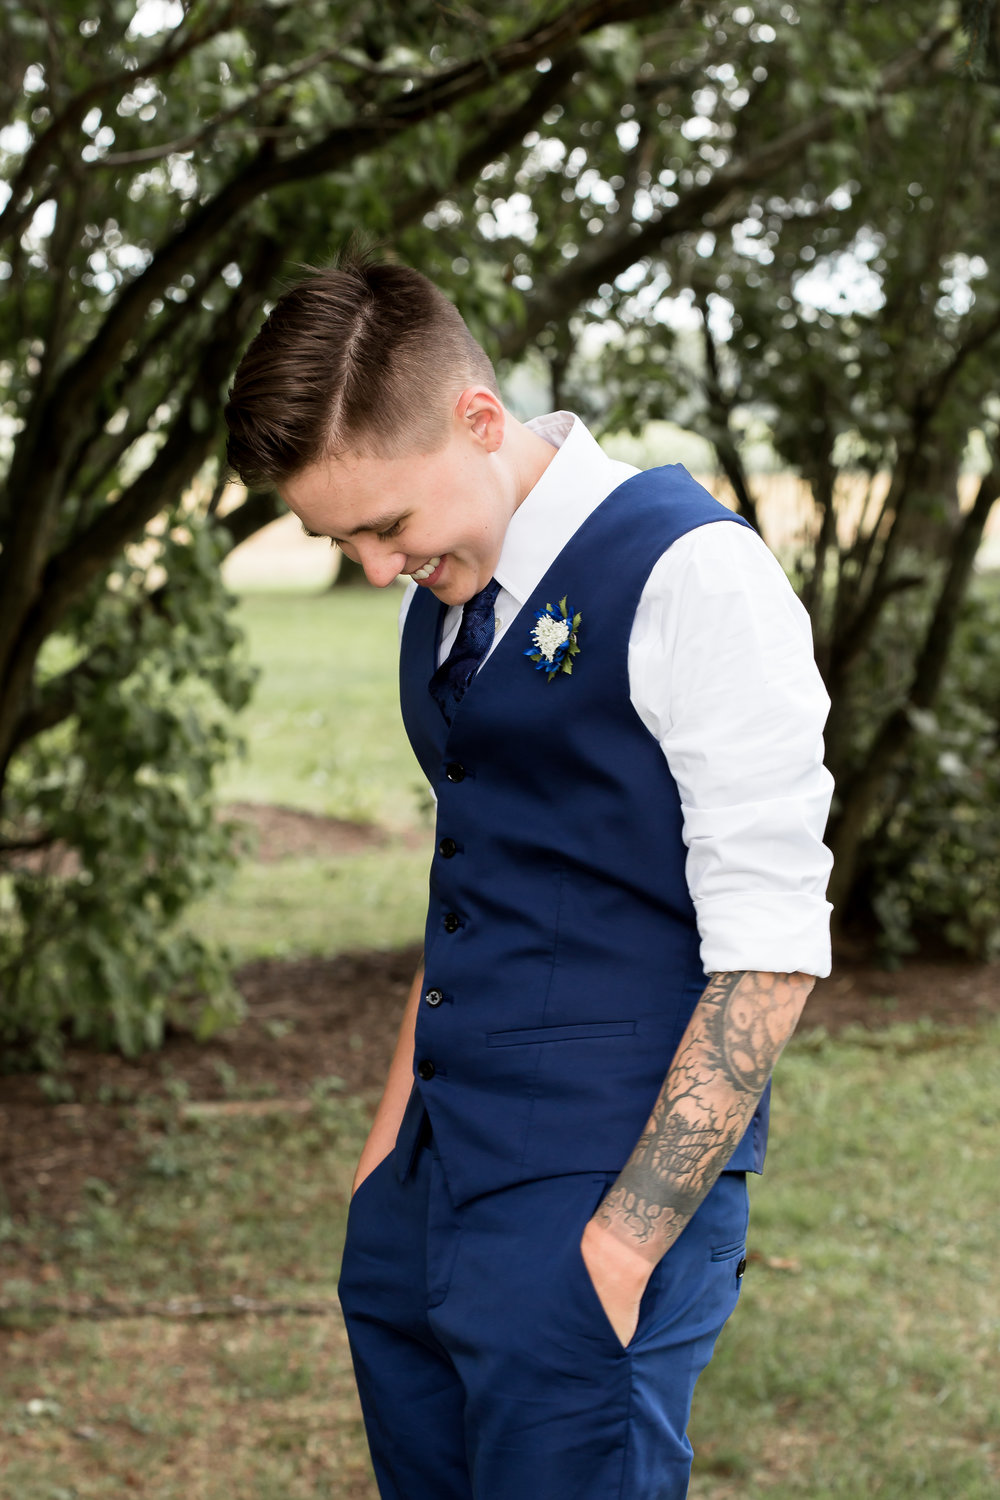 Gandjos_Tinko_BackSeatPhotography_backseatphoto27.JPG